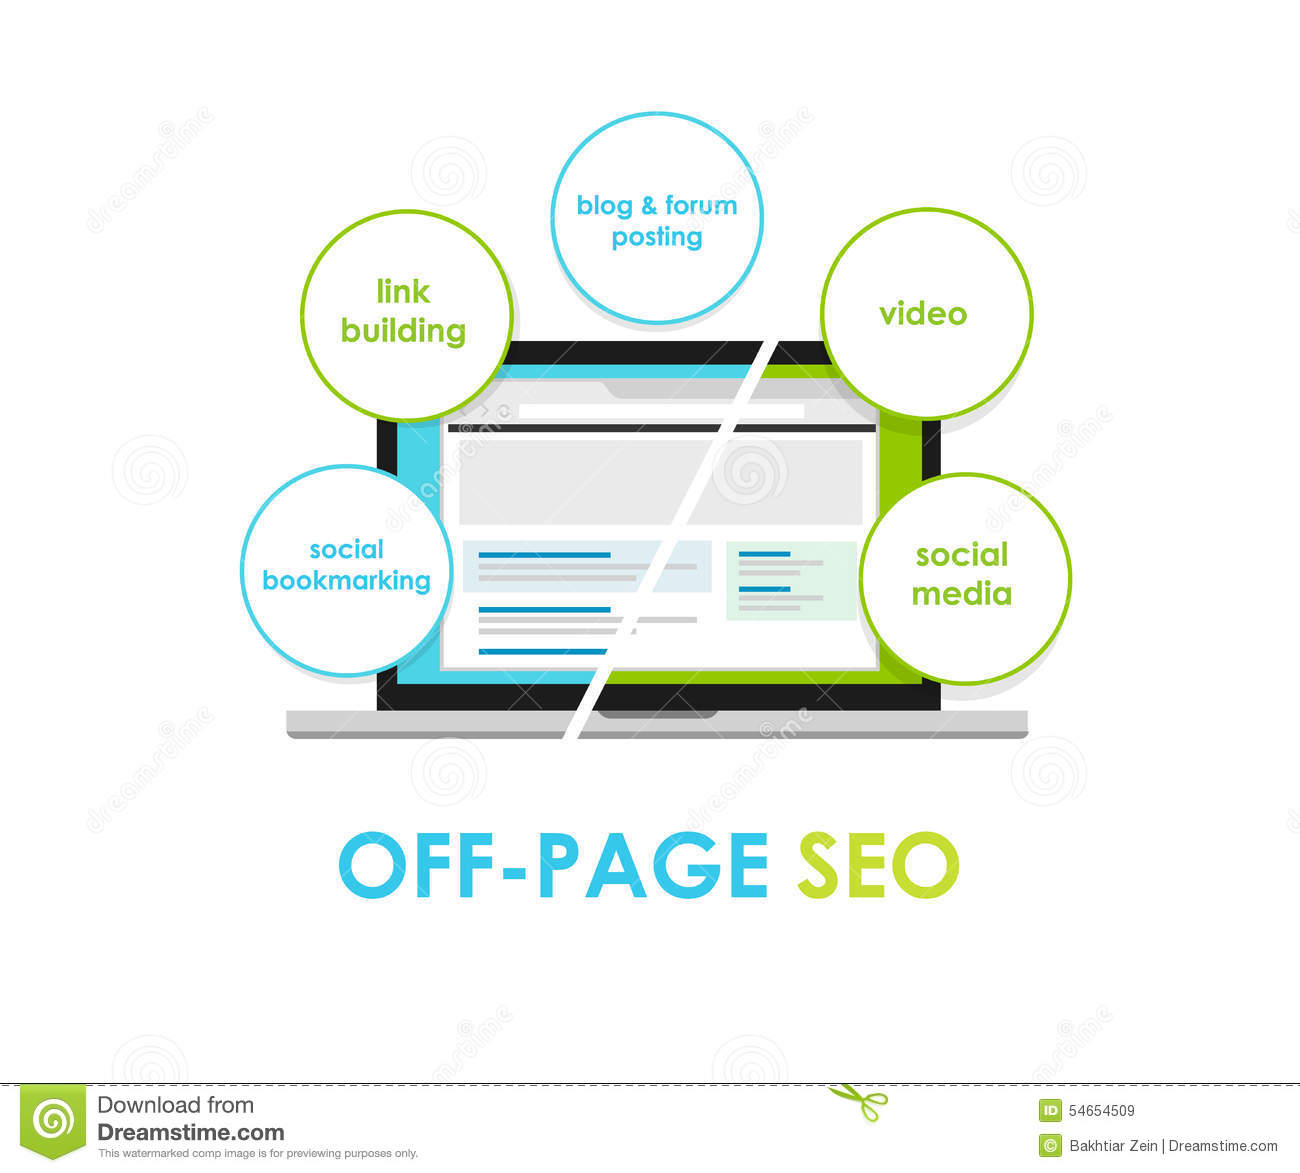 Stock Vector: Off page seo search engine optimization off-pageOff Page Seo Search Engine Optimization Off-page Stock Vector - Image: 54654509Off page seo search engine optimization off-page - 웹